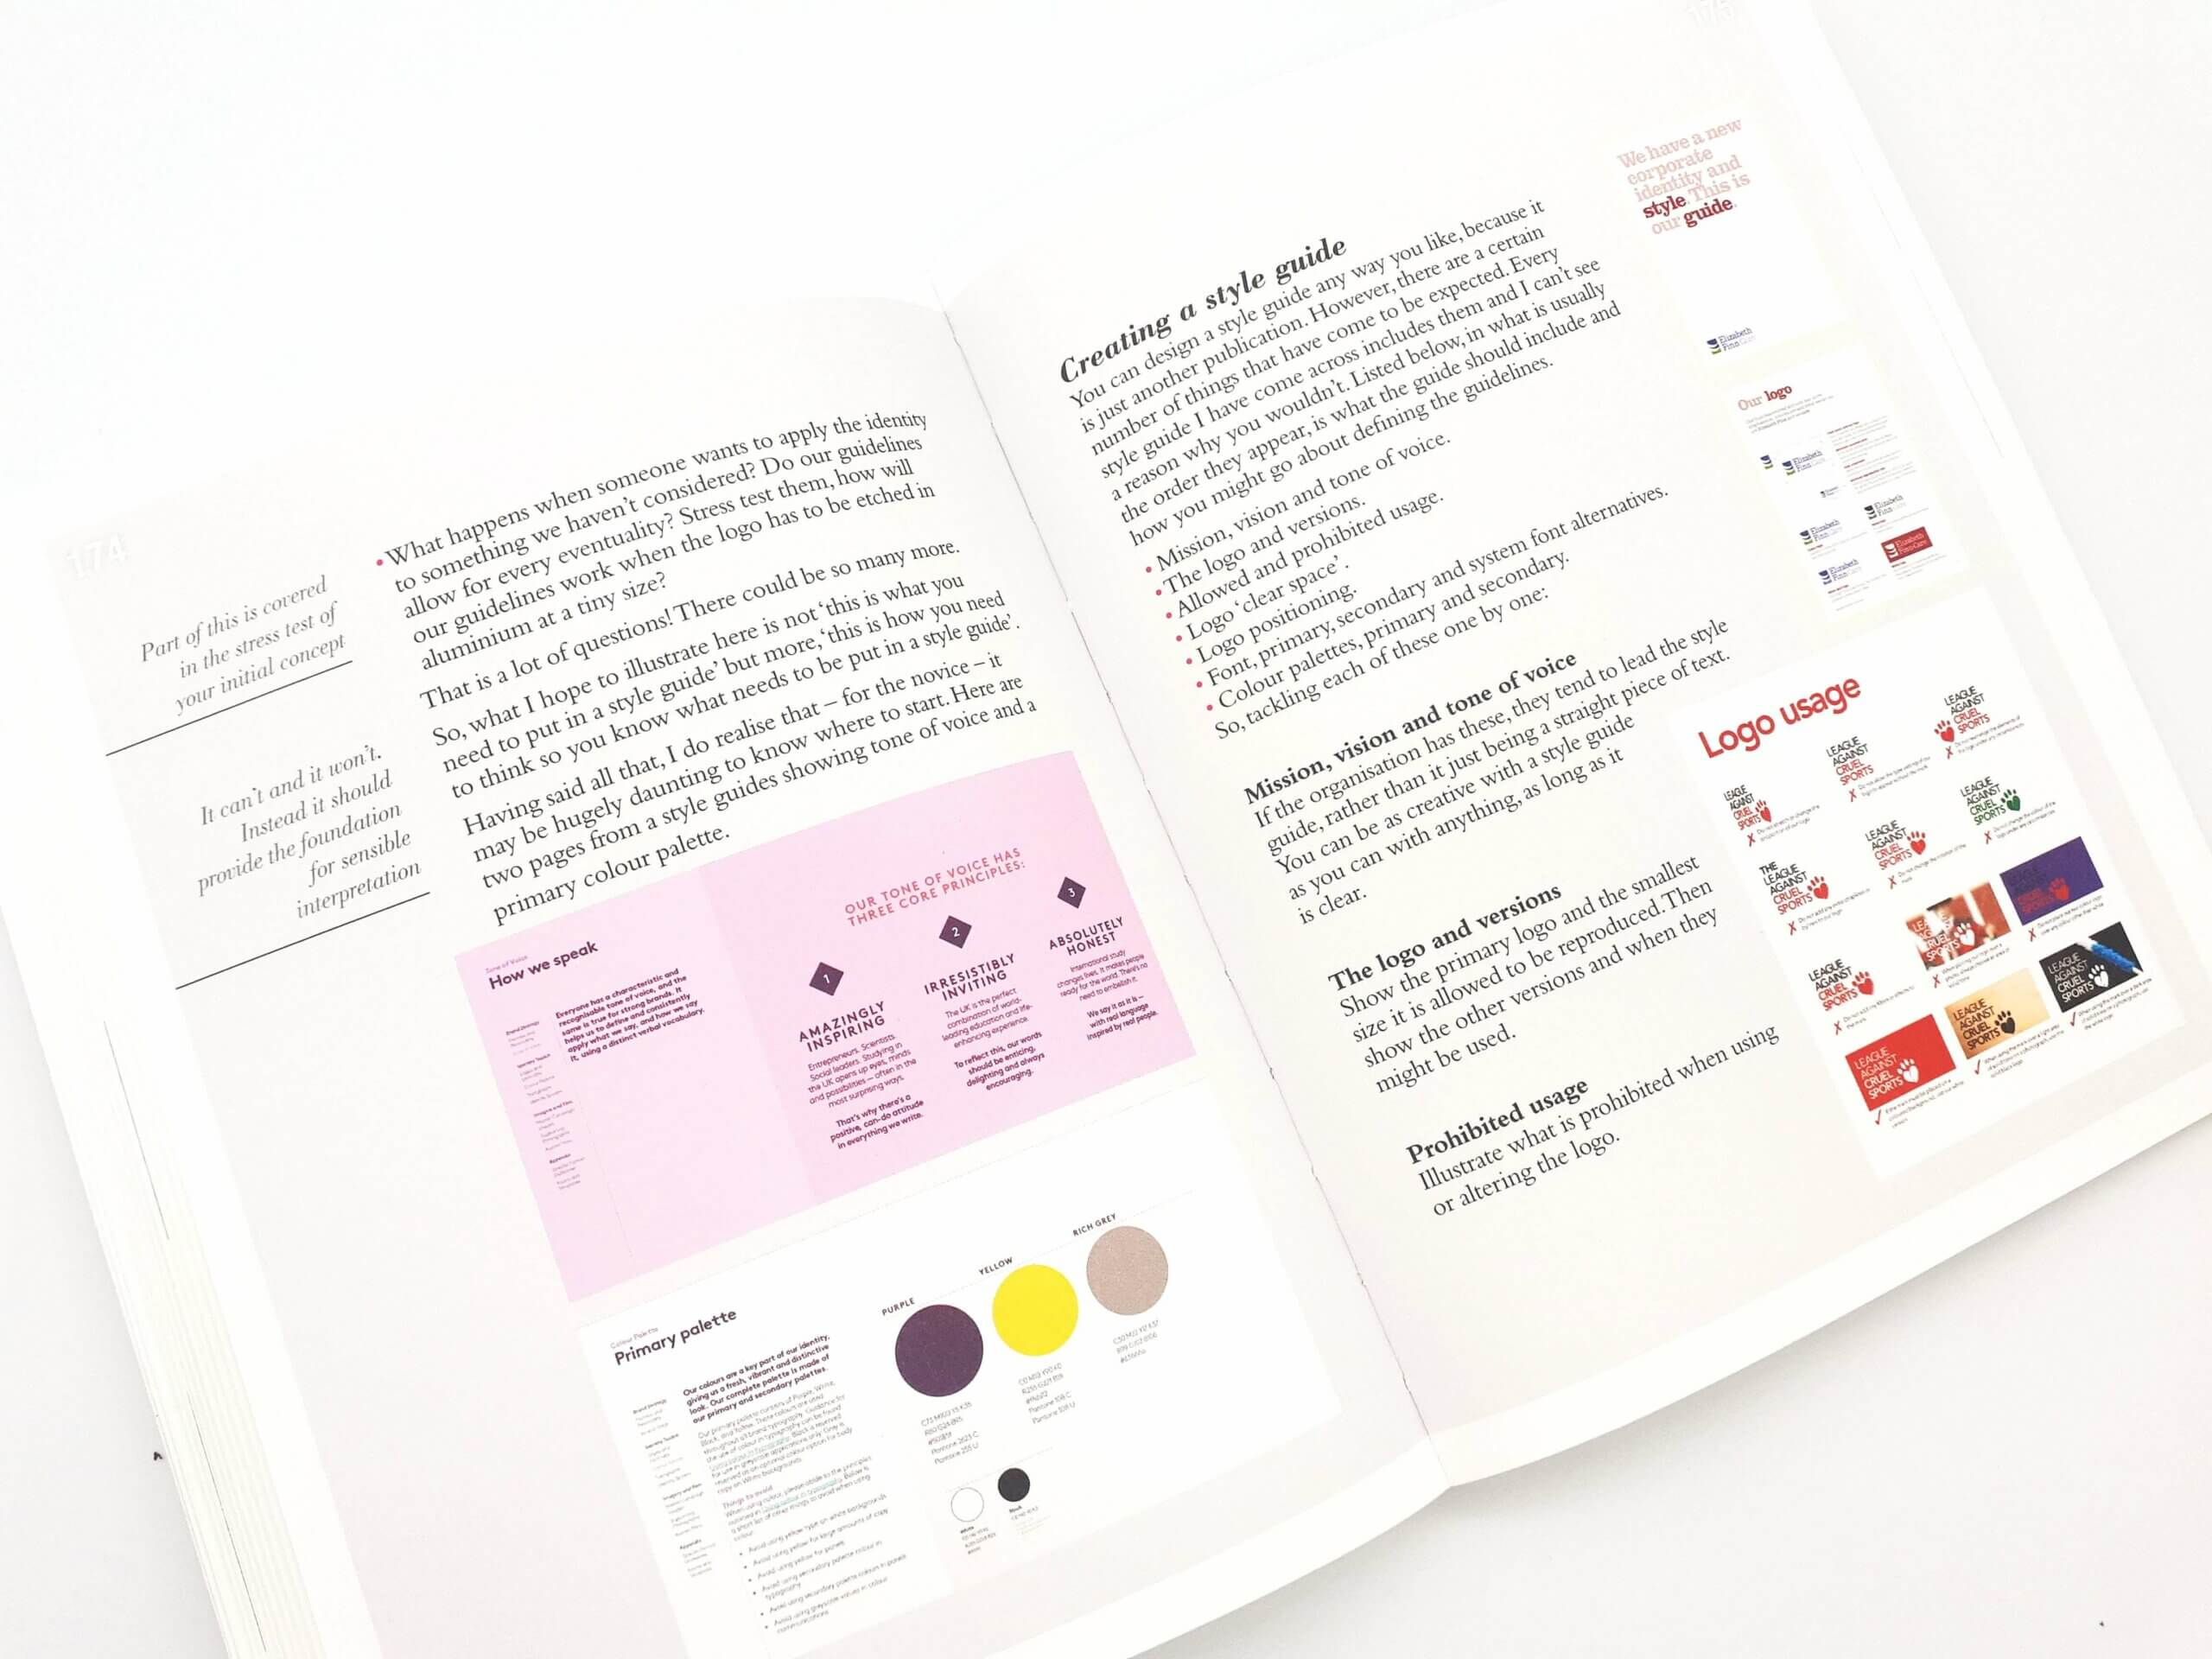 Know Your Onions - Corporate Identity By Drew de Soto - Book Review_11